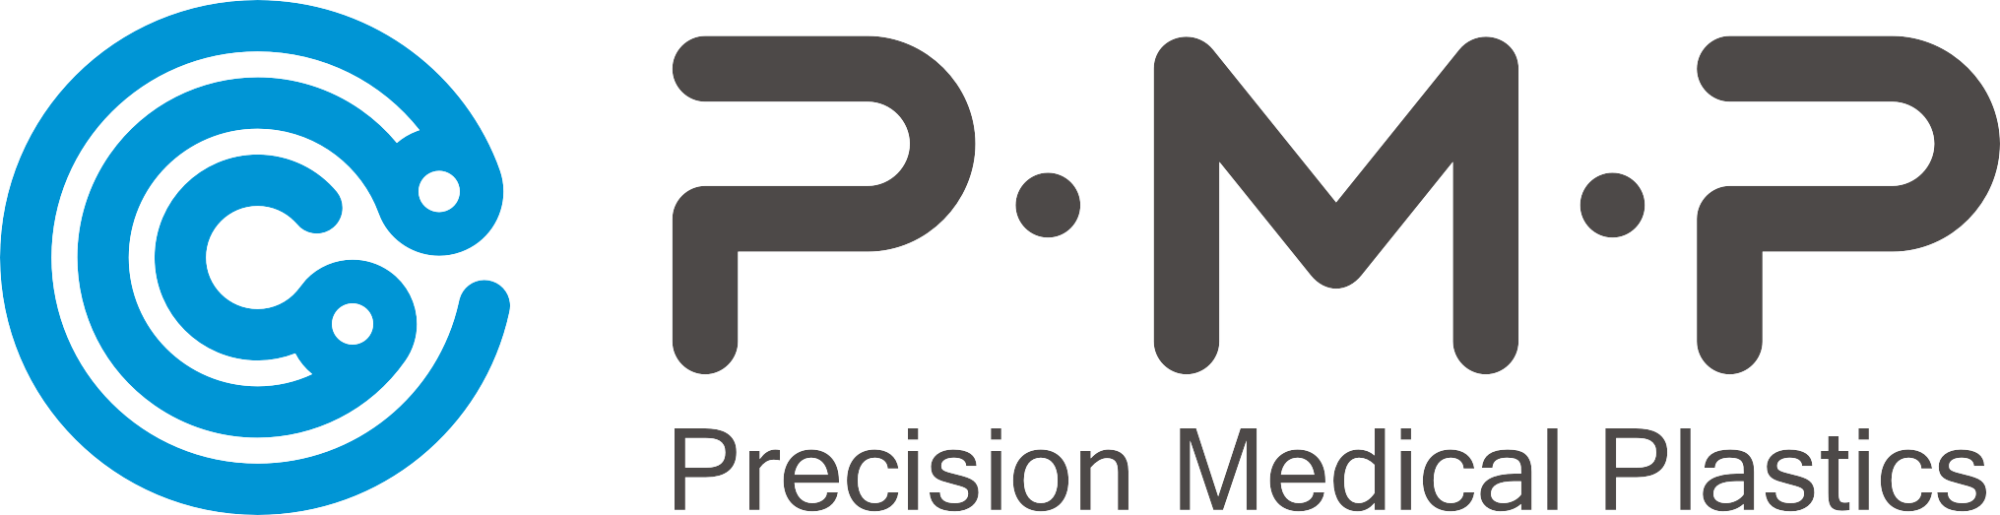 Precision Medical Plastics,Ltd